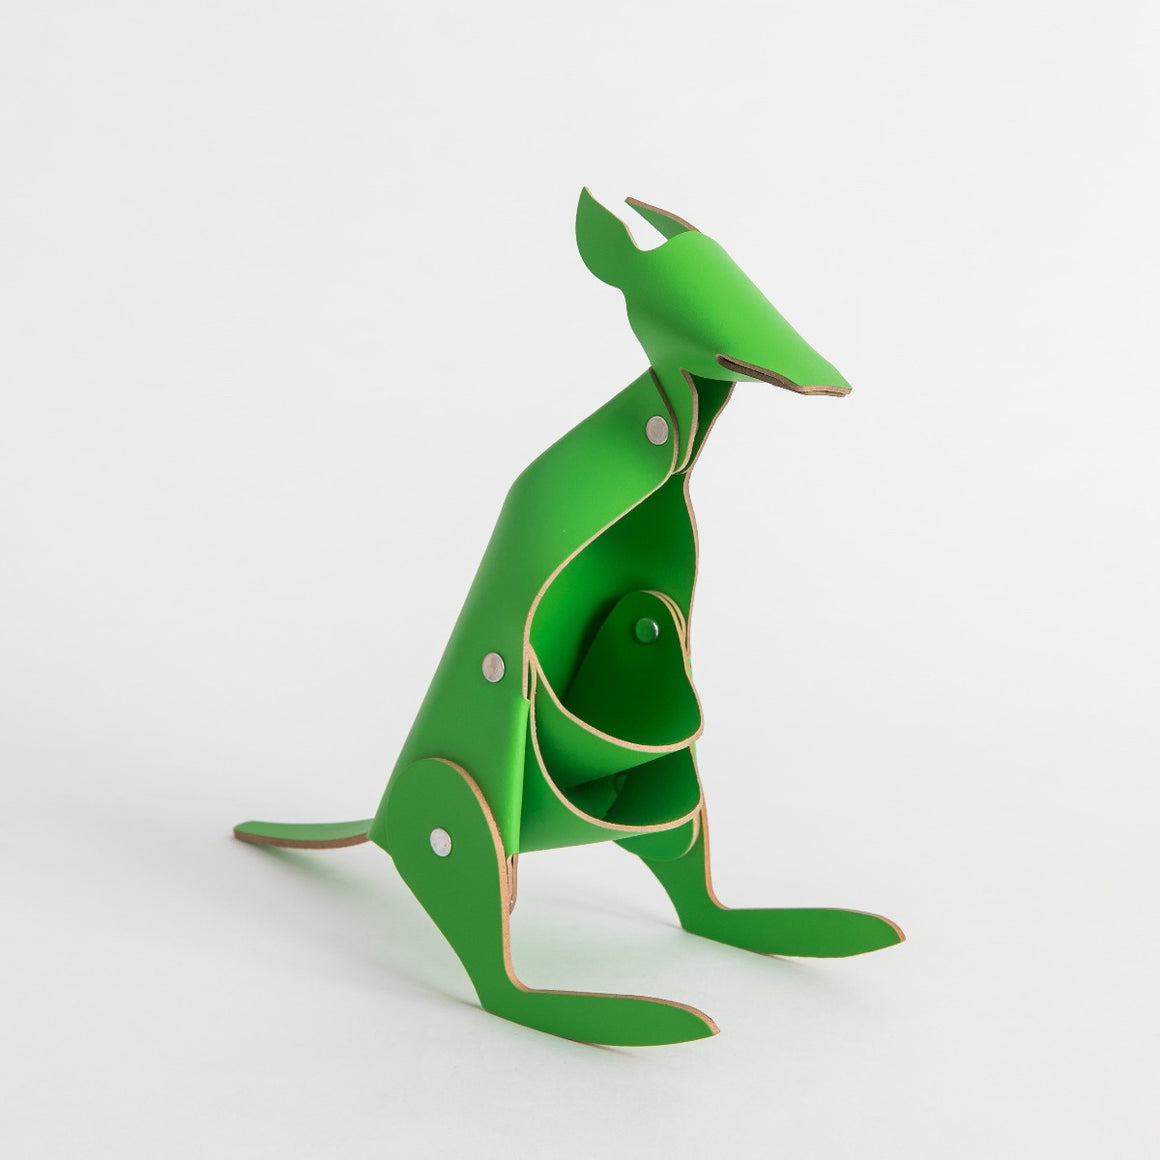 Leather Desk Kangaroo in the colour green